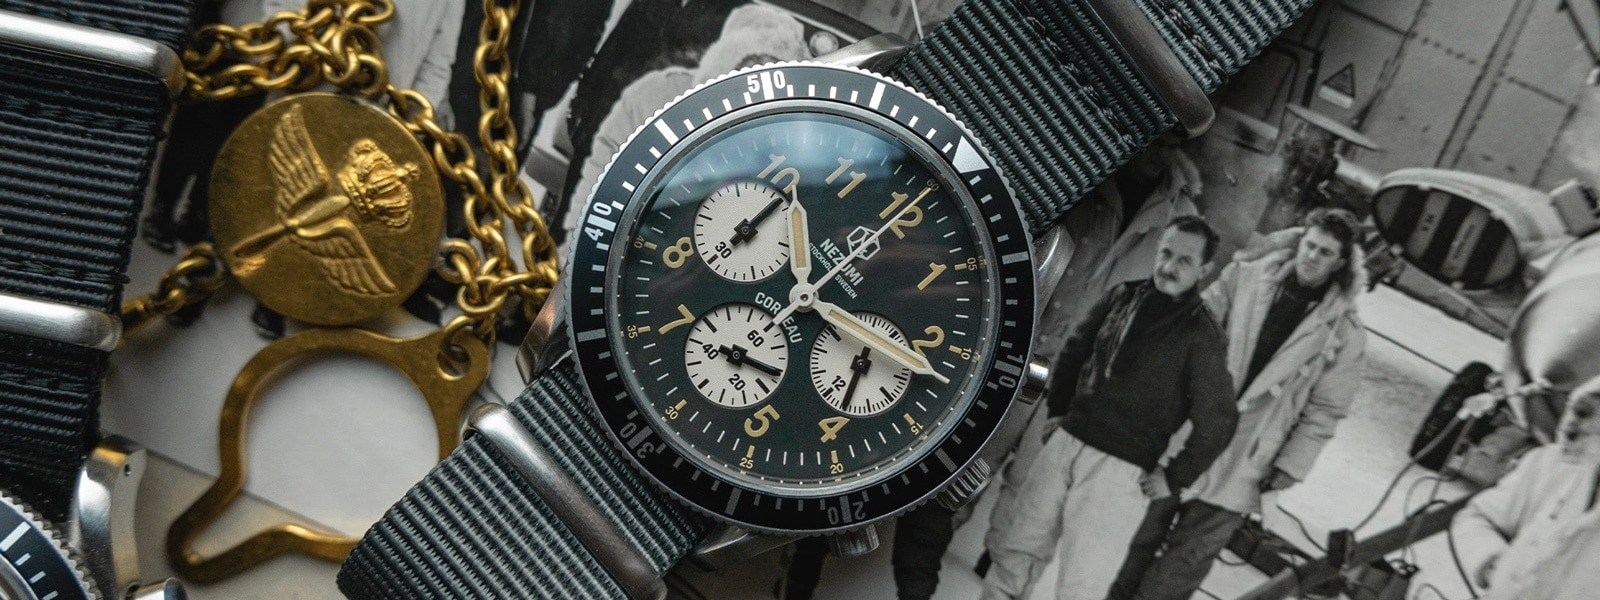 Nezumi Studios Watch Corbeau CQ2.202 military chronograph with nato strap